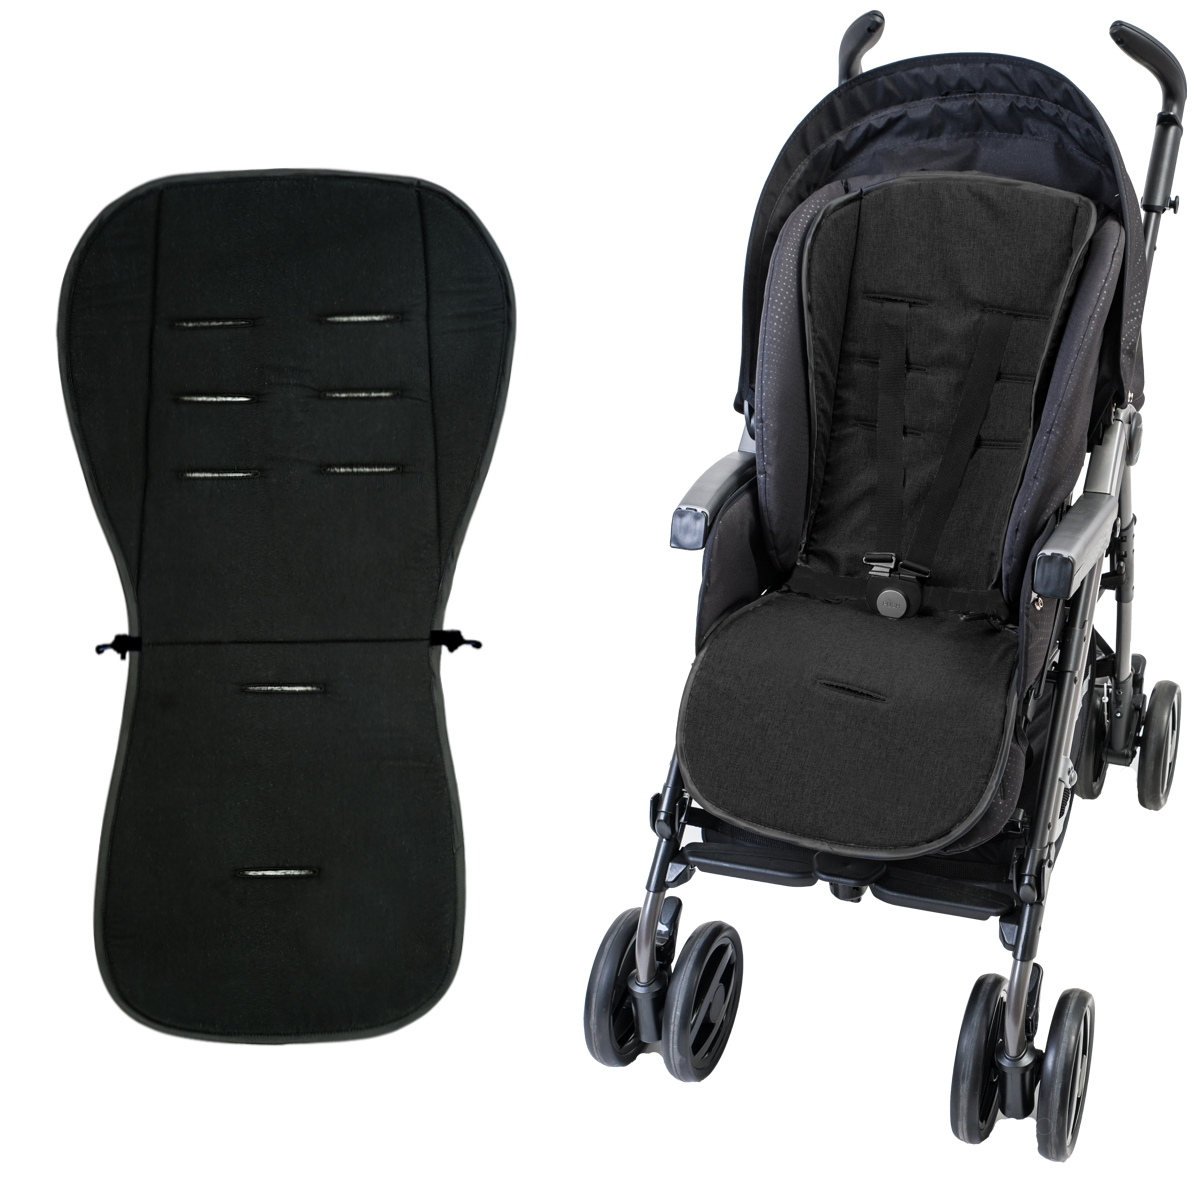 altabebe einlage f r buggy kinderwagen unterlage fu sack kinder sitz auflage ebay. Black Bedroom Furniture Sets. Home Design Ideas